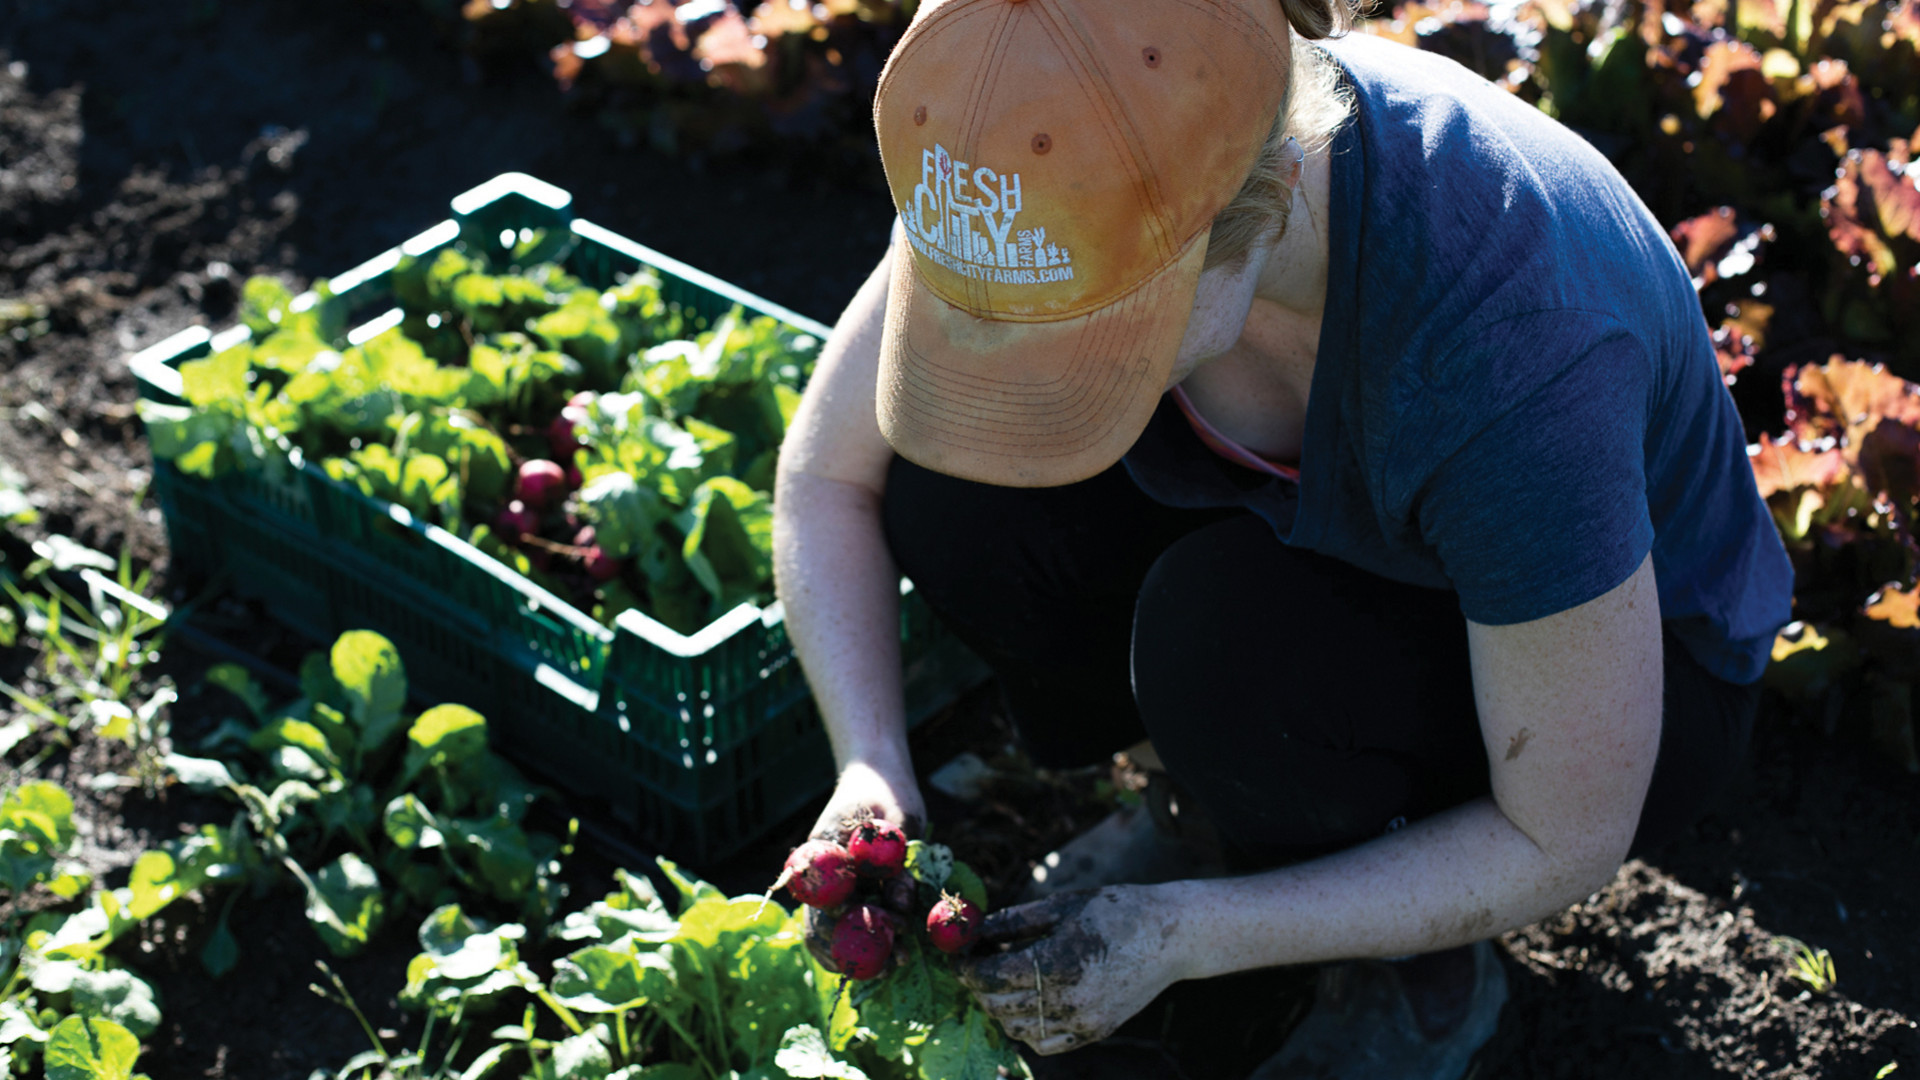 Someone harvesting produce for Fresh City Farms